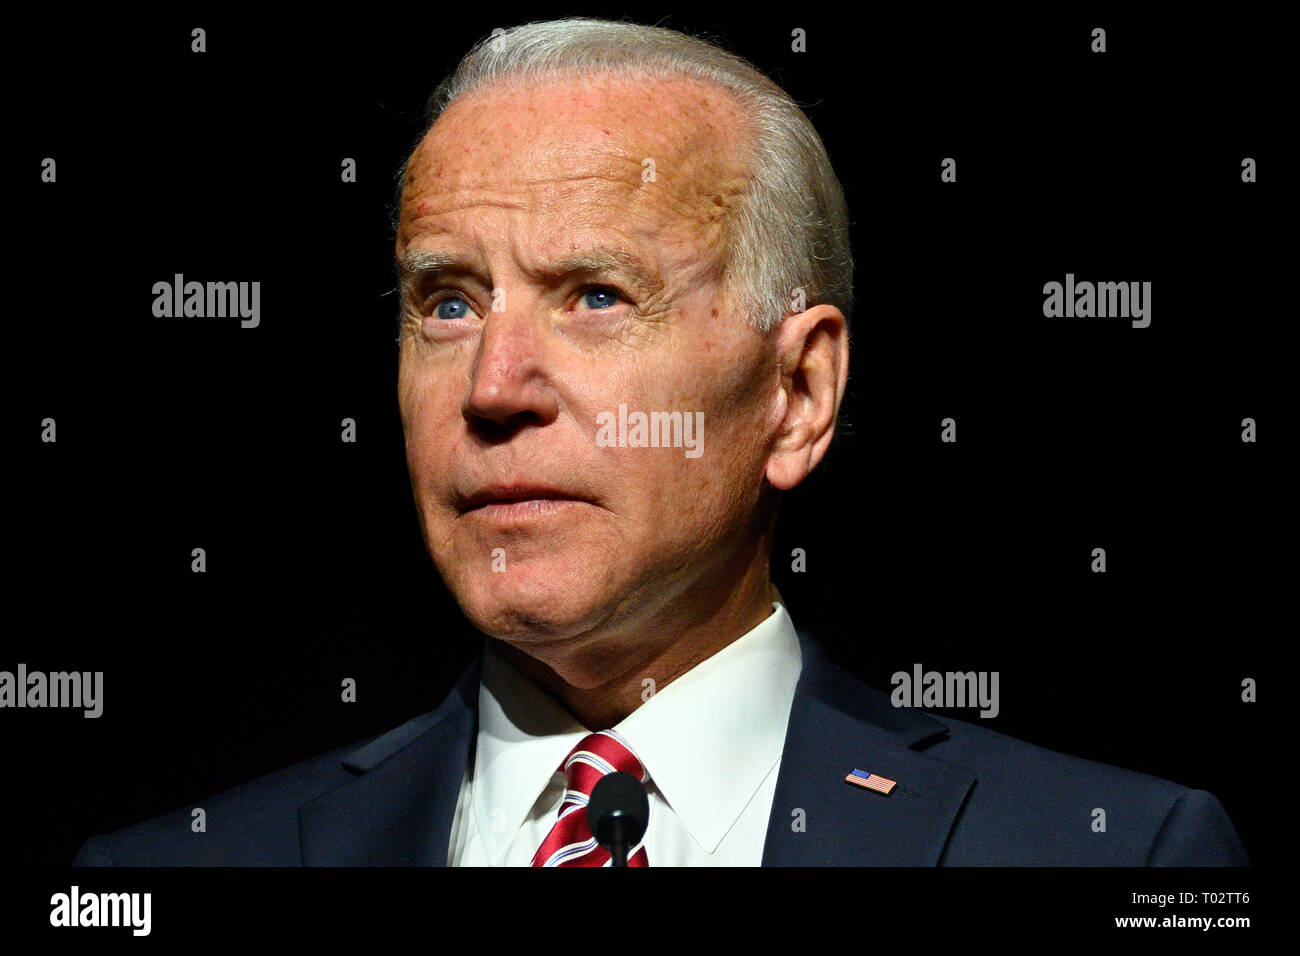 Delaware, USA. 16th March 2019. Joe Biden delivers the keynote speech at the First State Democratic Dinner at the Rollins Center in Dover, DE on March 16, 2019. The former U.S. Vice President refrained from announcing his candidacy, even-though early polls conducted in March indicate former Vice President Biden as the favorite of a large Democratic field of candidates. Credit: OOgImages/Alamy Live News - Stock Image